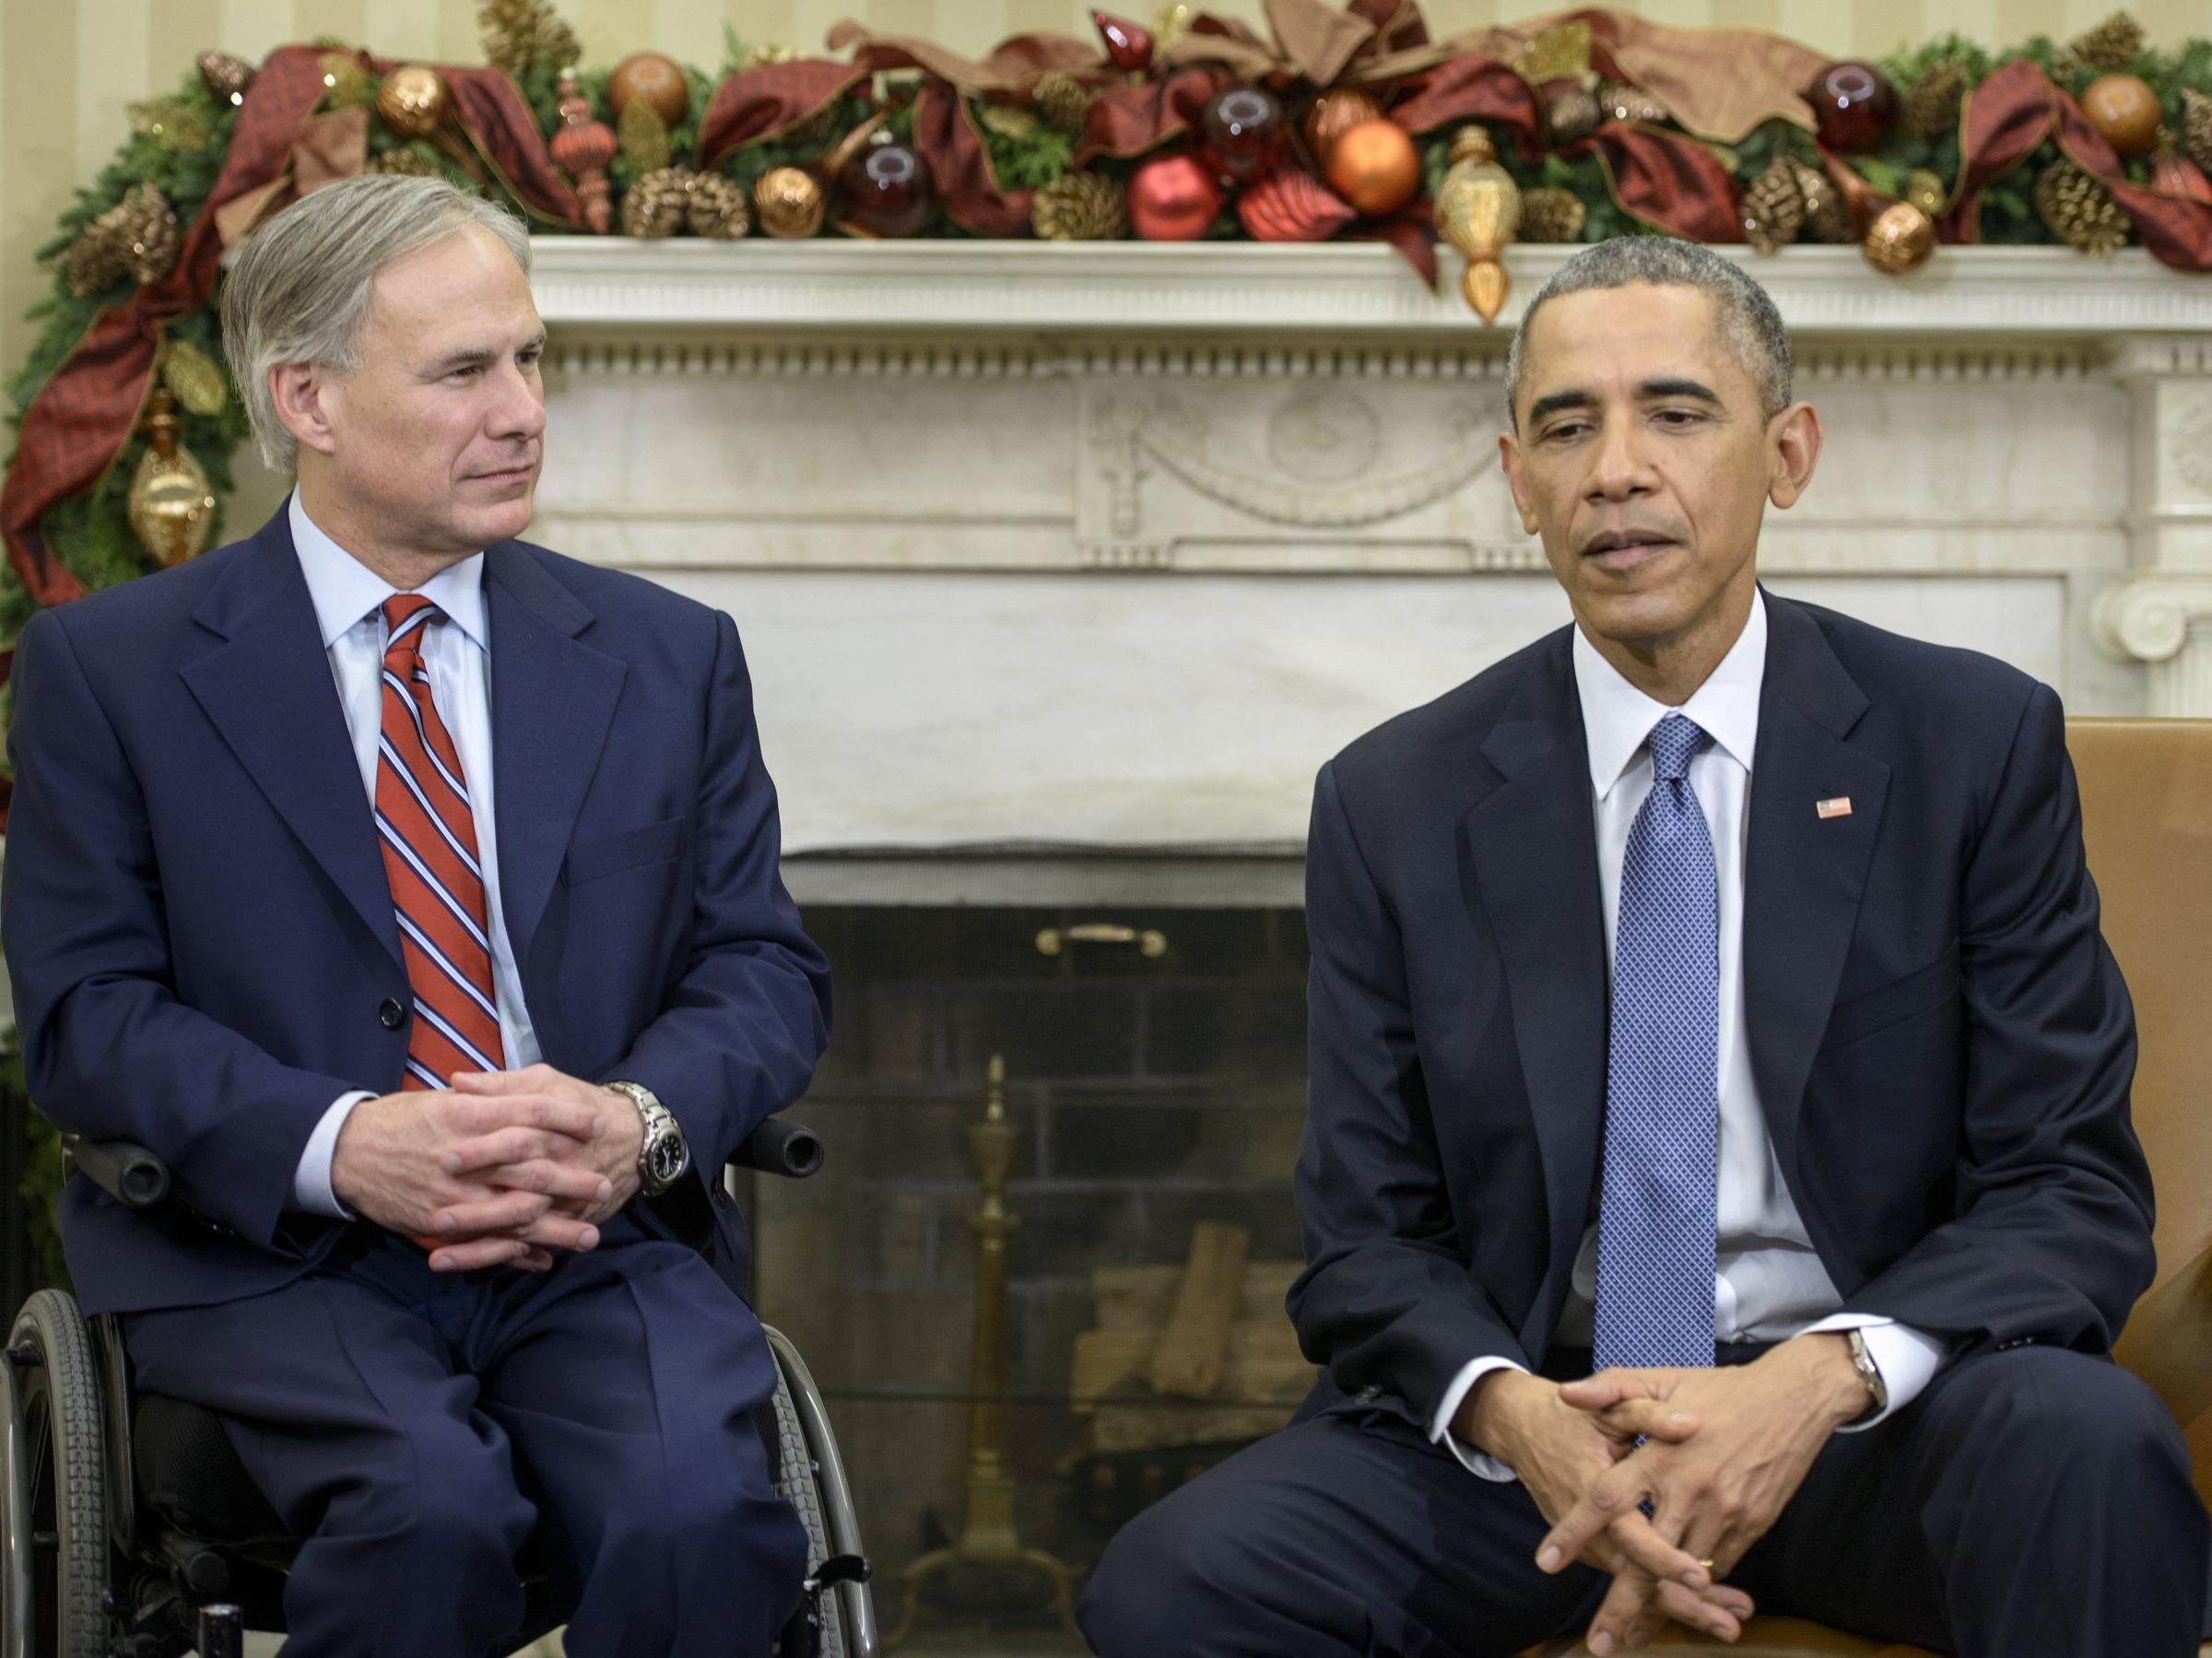 Texas Woman Charged With Mailing Explosives to Obama, Gov. Abbott